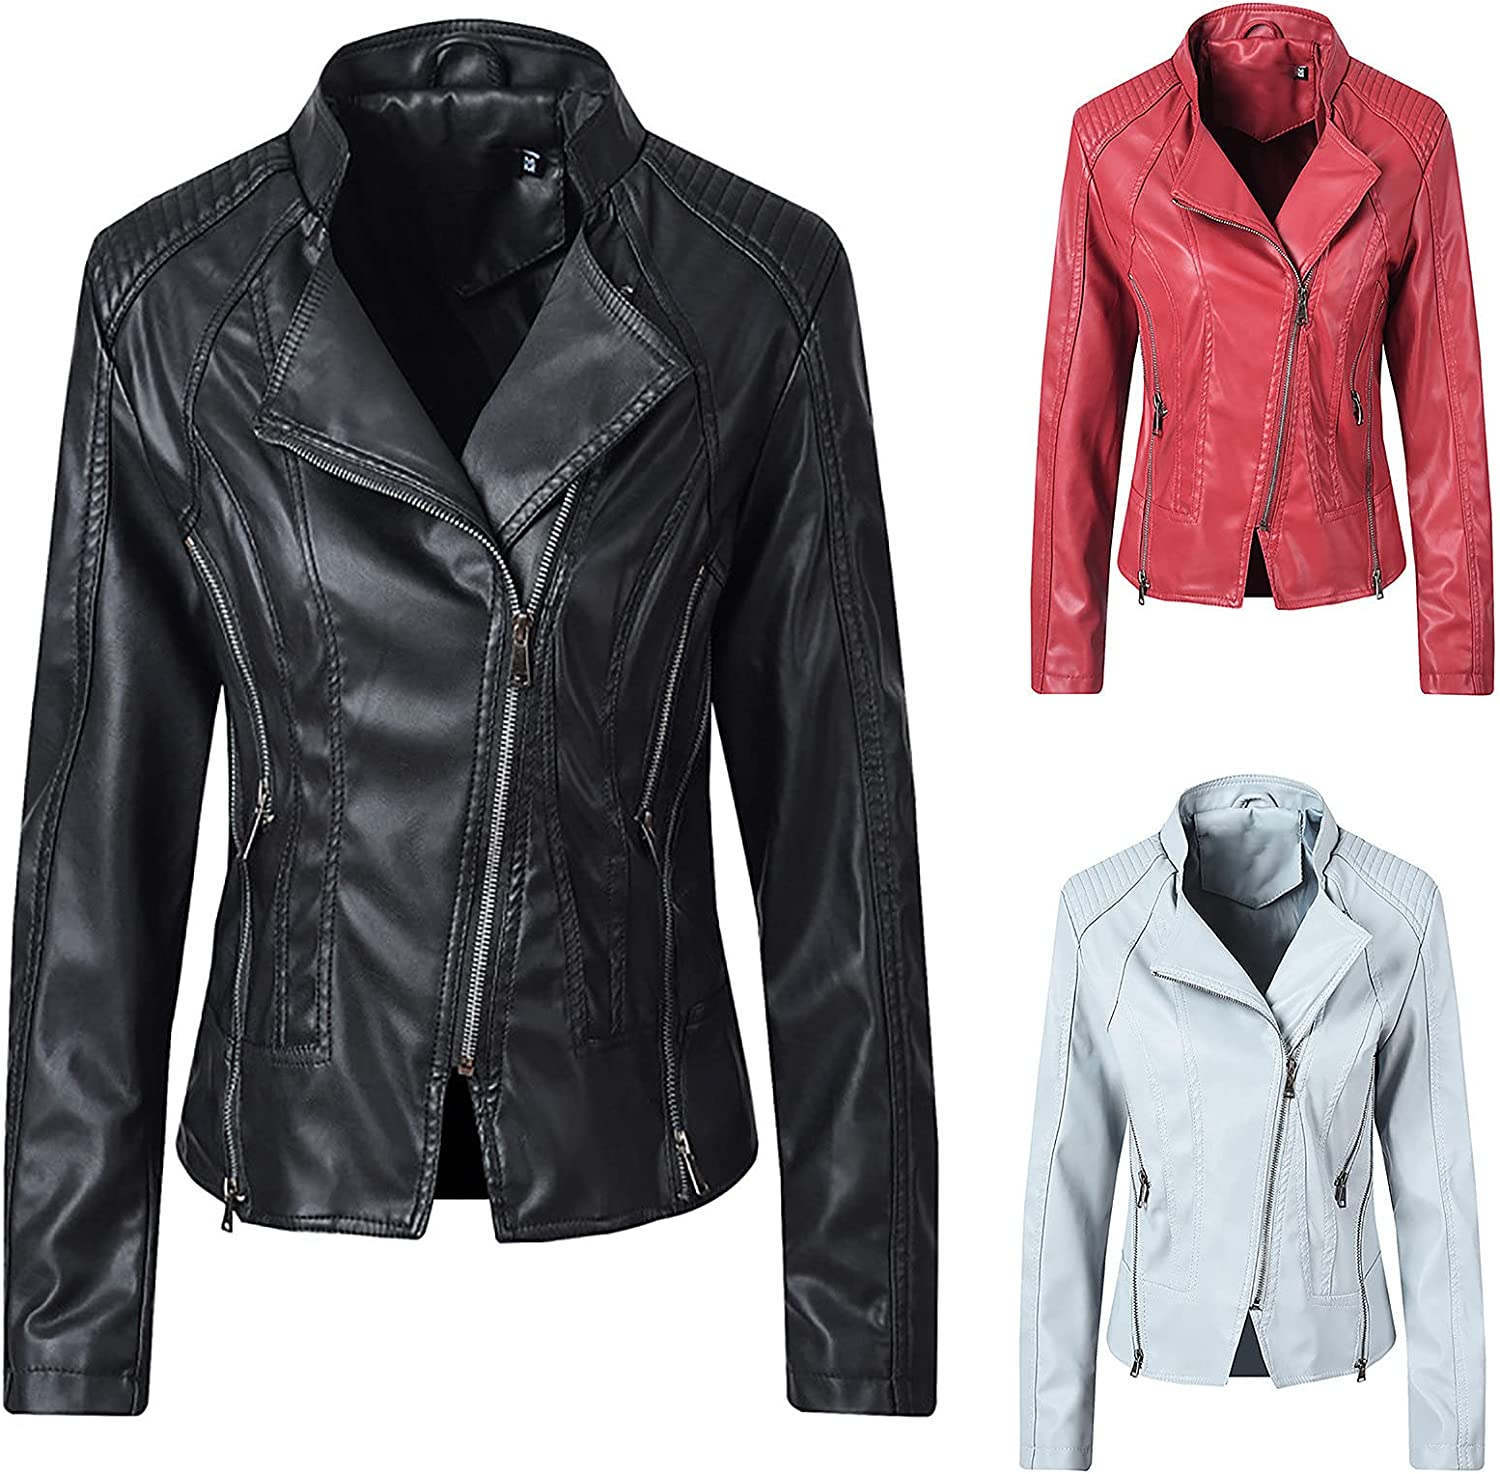 Now free shipping Faux Leather Short Jacket Women Quilted Fit Casual Max 79% OFF Slim Fashion